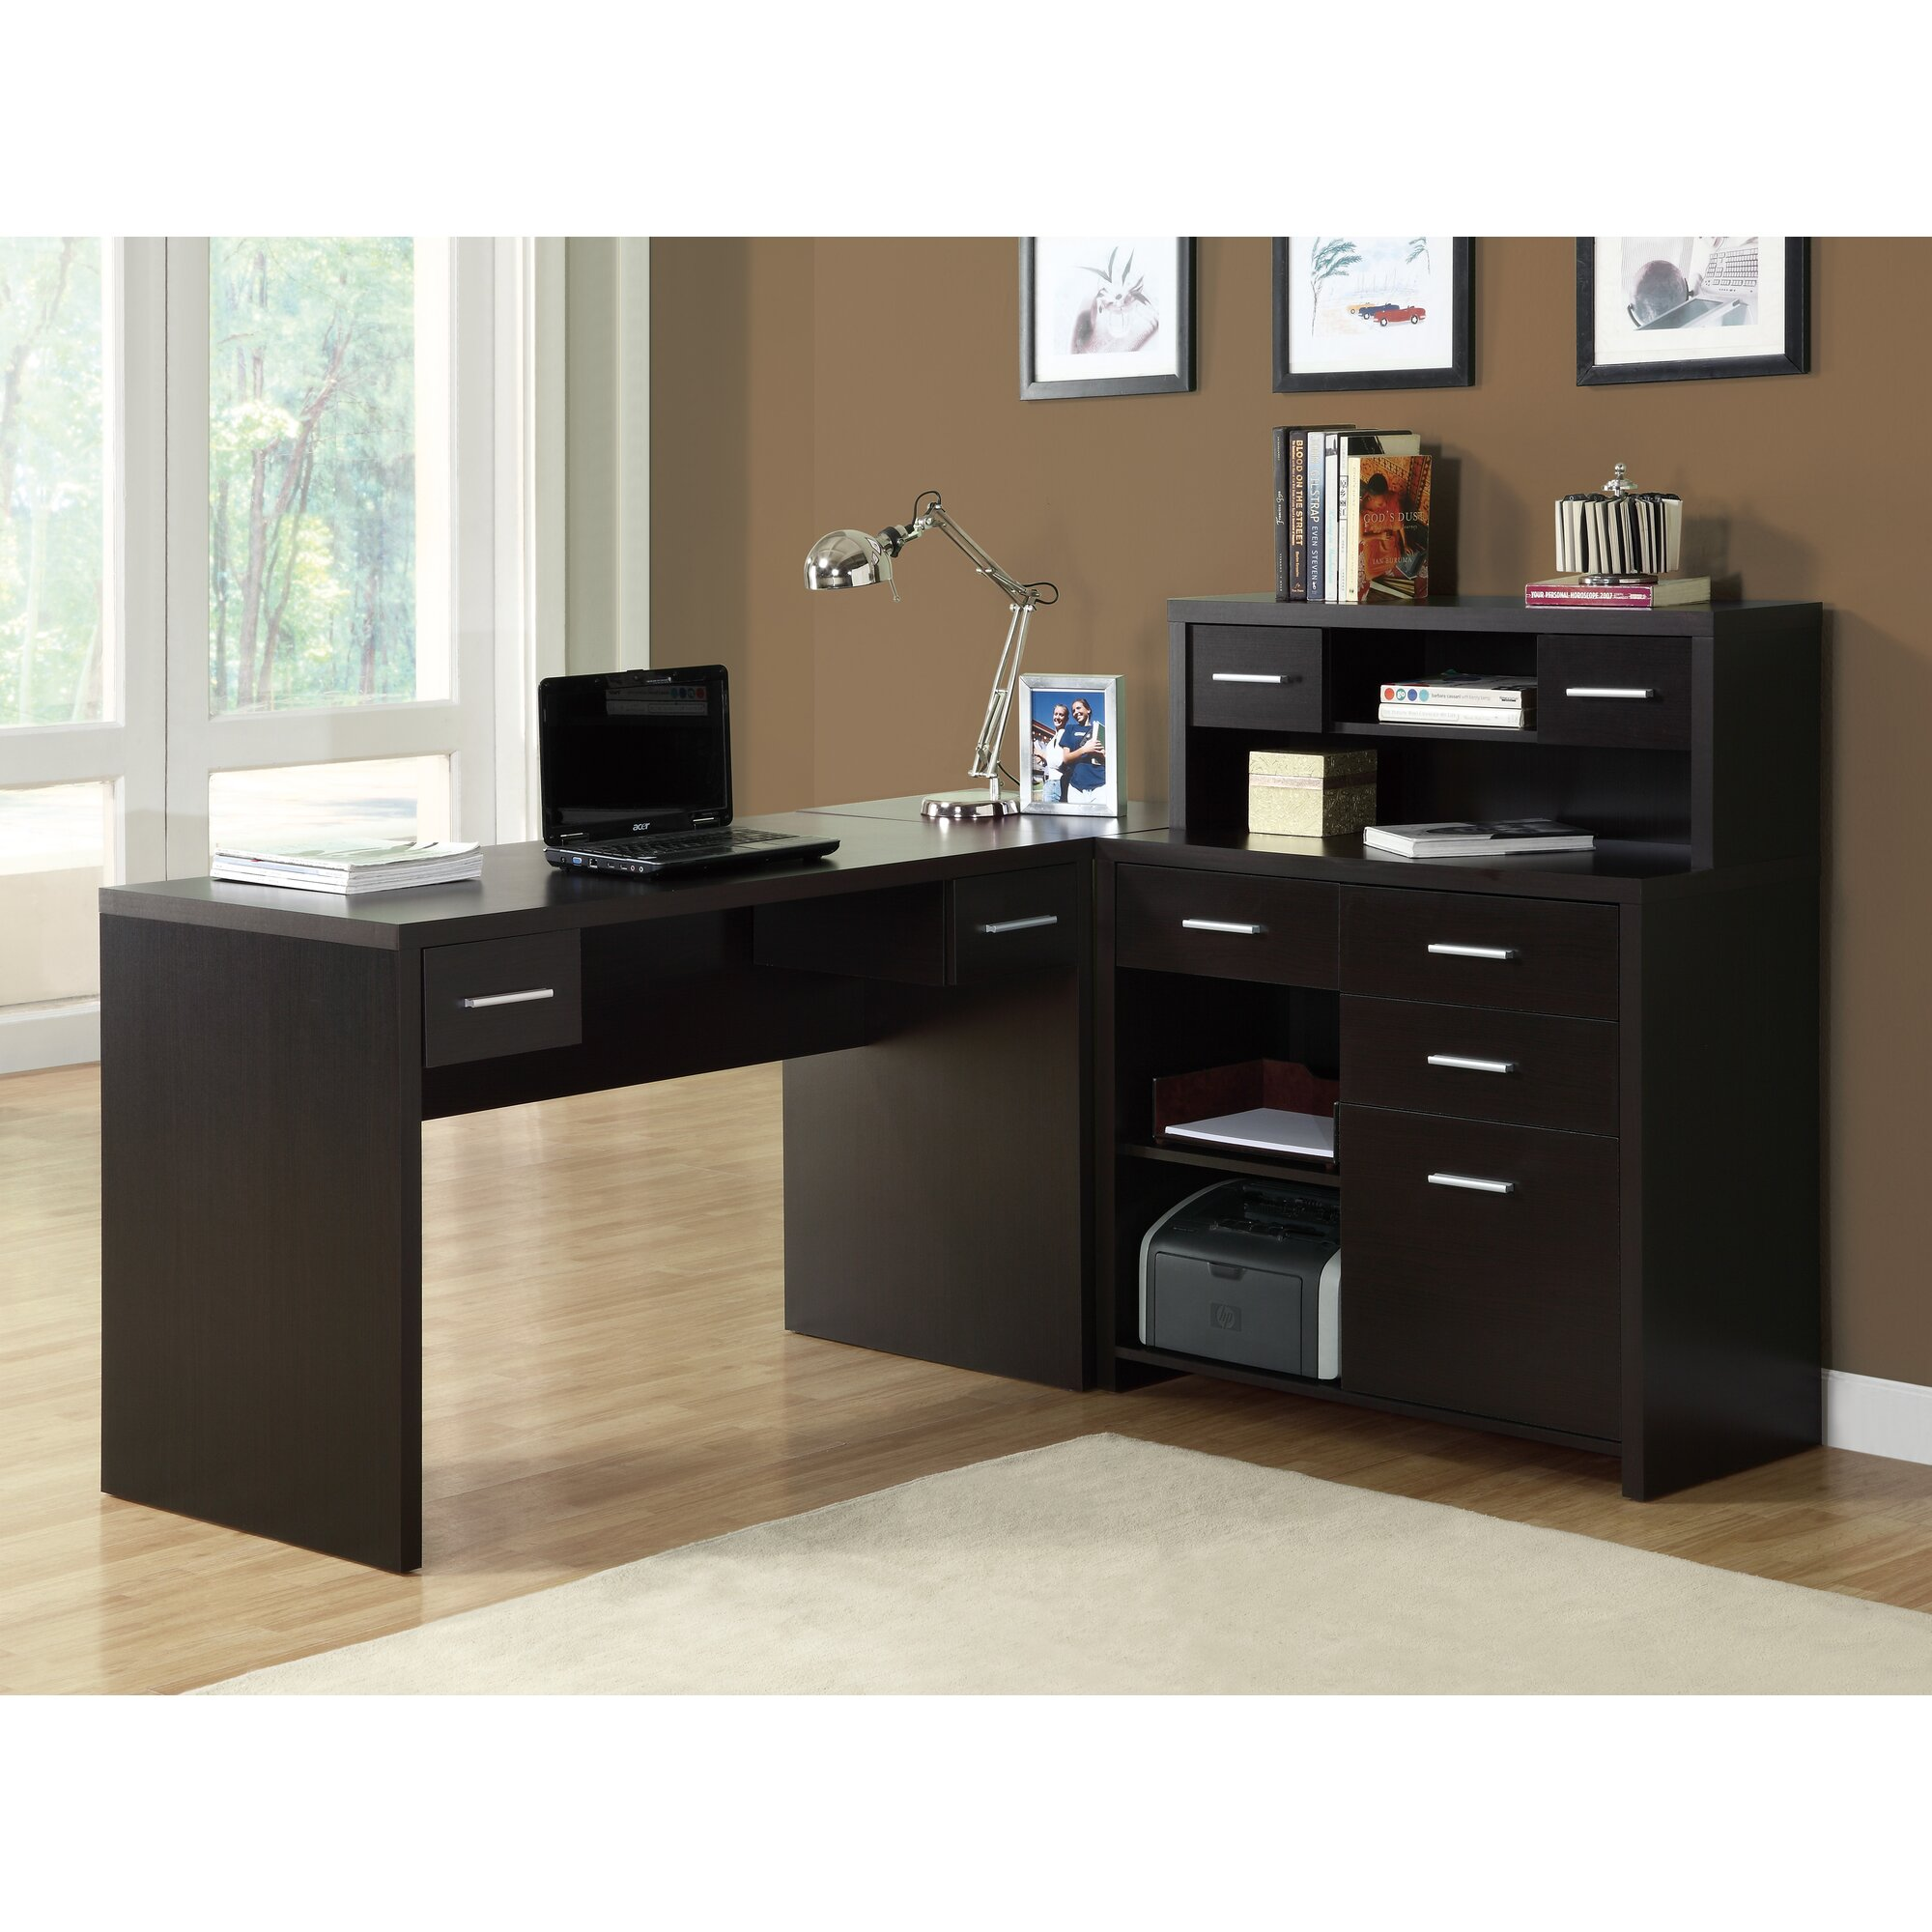 l shaped desks youll love - Home Office L Shaped Desk